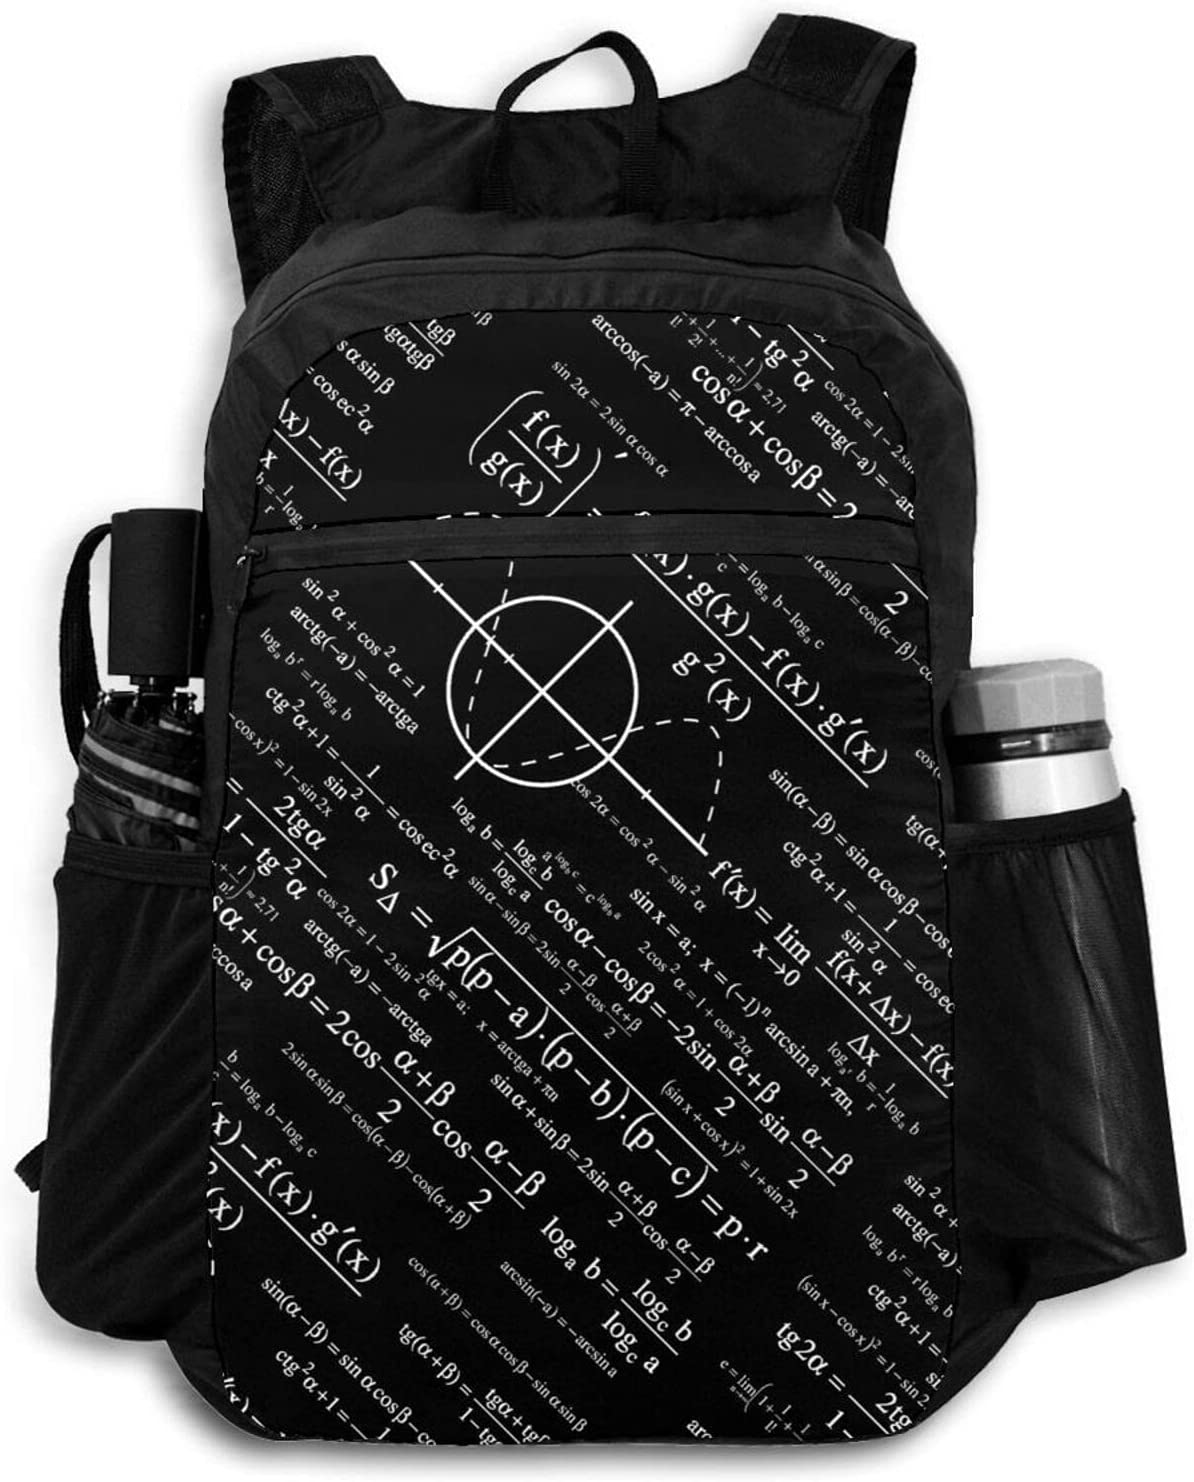 Zolama Physics Physicists Backpacks for Popular overseas Cute Super intense SALE Women Packable Men